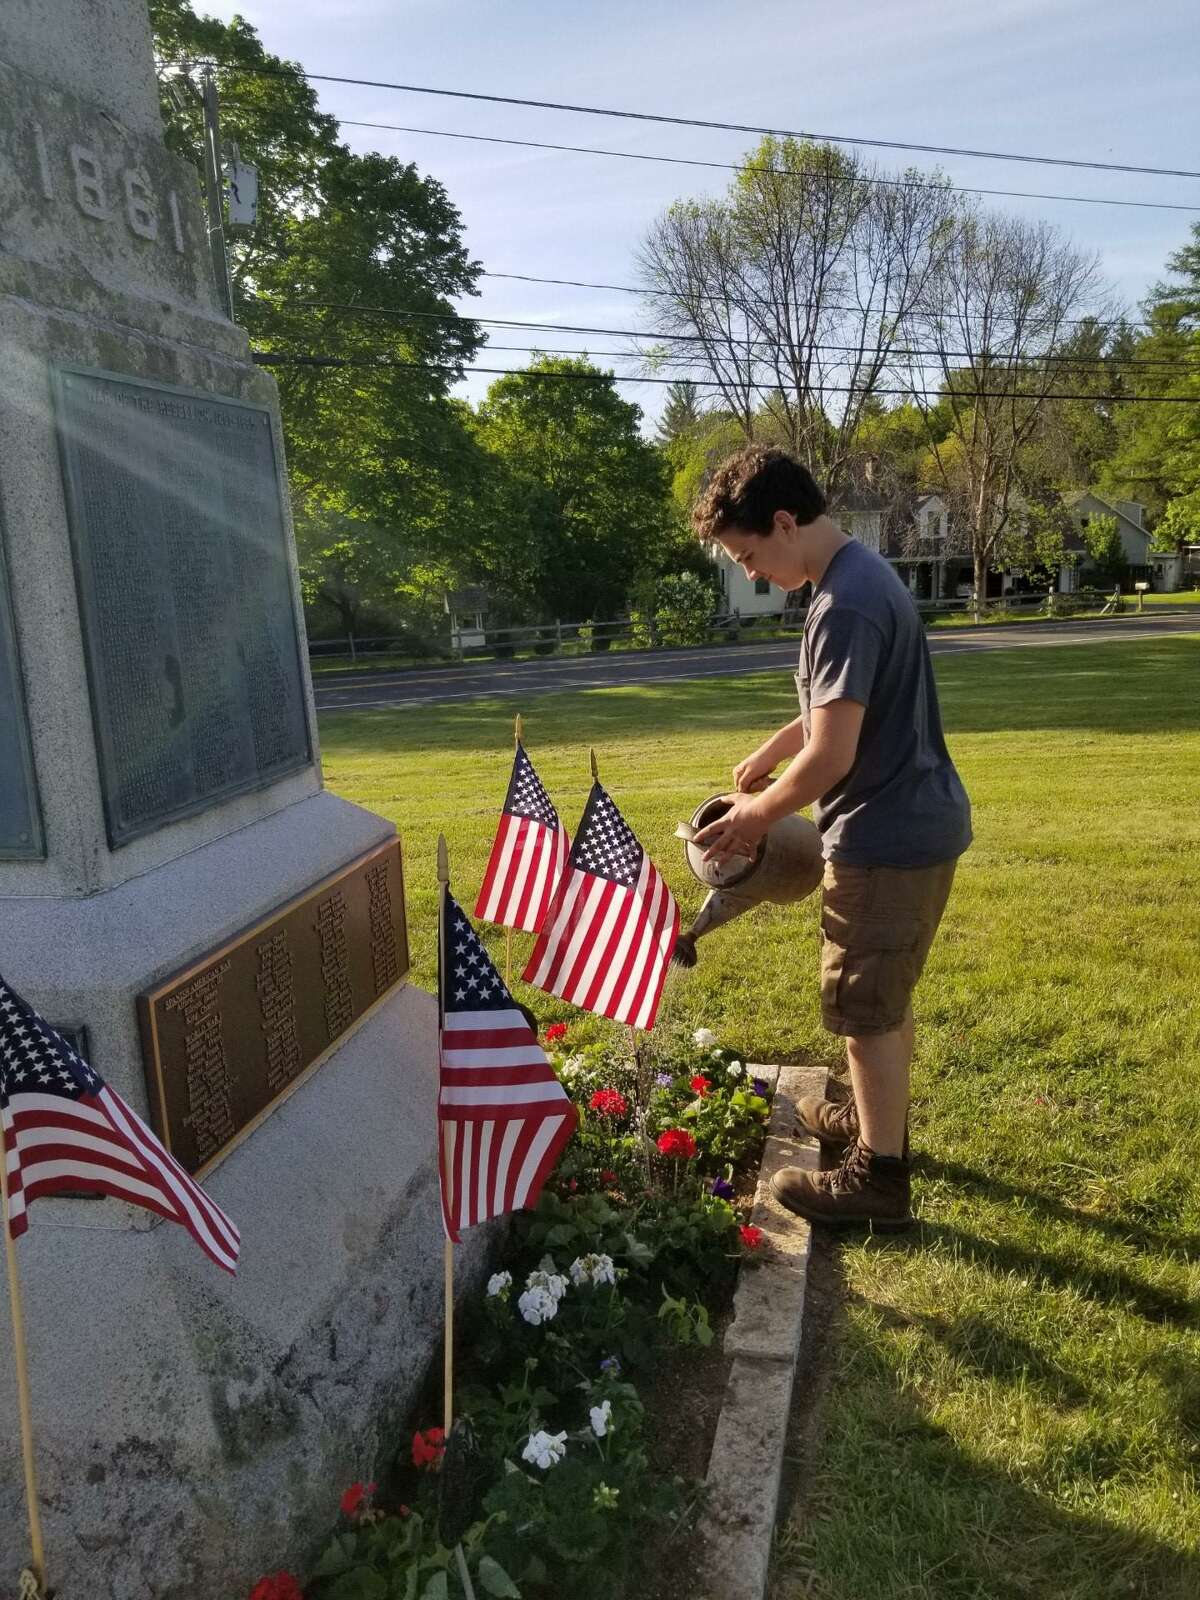 Students from the Northwestern Regional Agricultural Education FFA Program recently donated plants grown in their greenhouse and planted them at the Veteran's Memorial Monument in Barkahmsted in honor of Memorial Day. Above, freshman Joseph Caron waters the plantings.